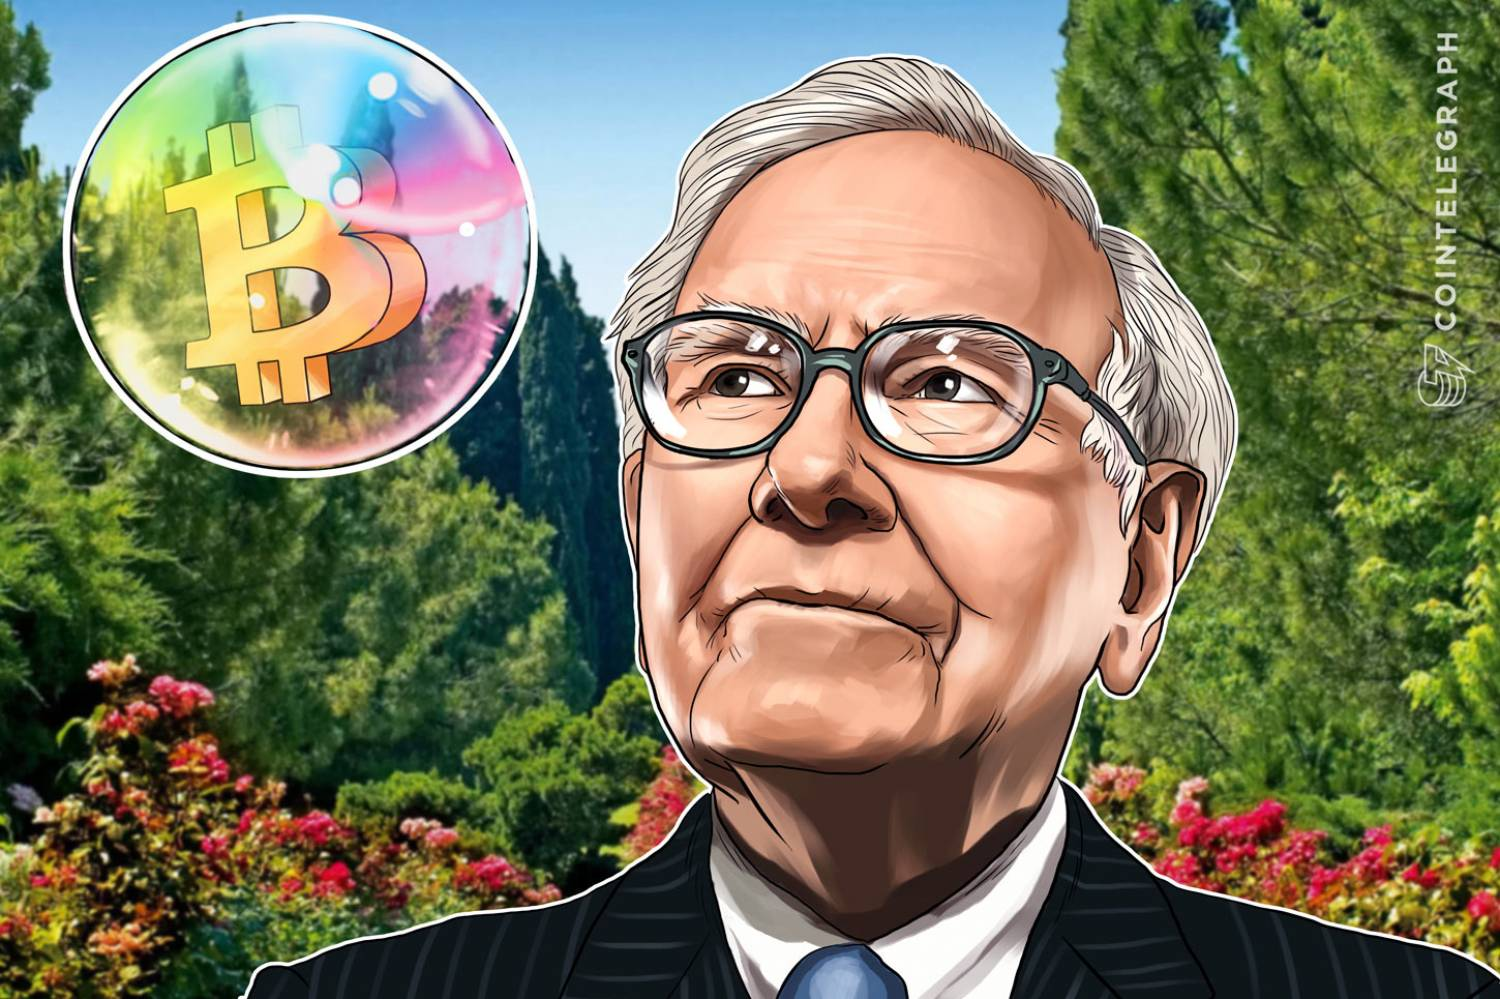 Warren Buffett said that bitcoin lacked intrinsic value.